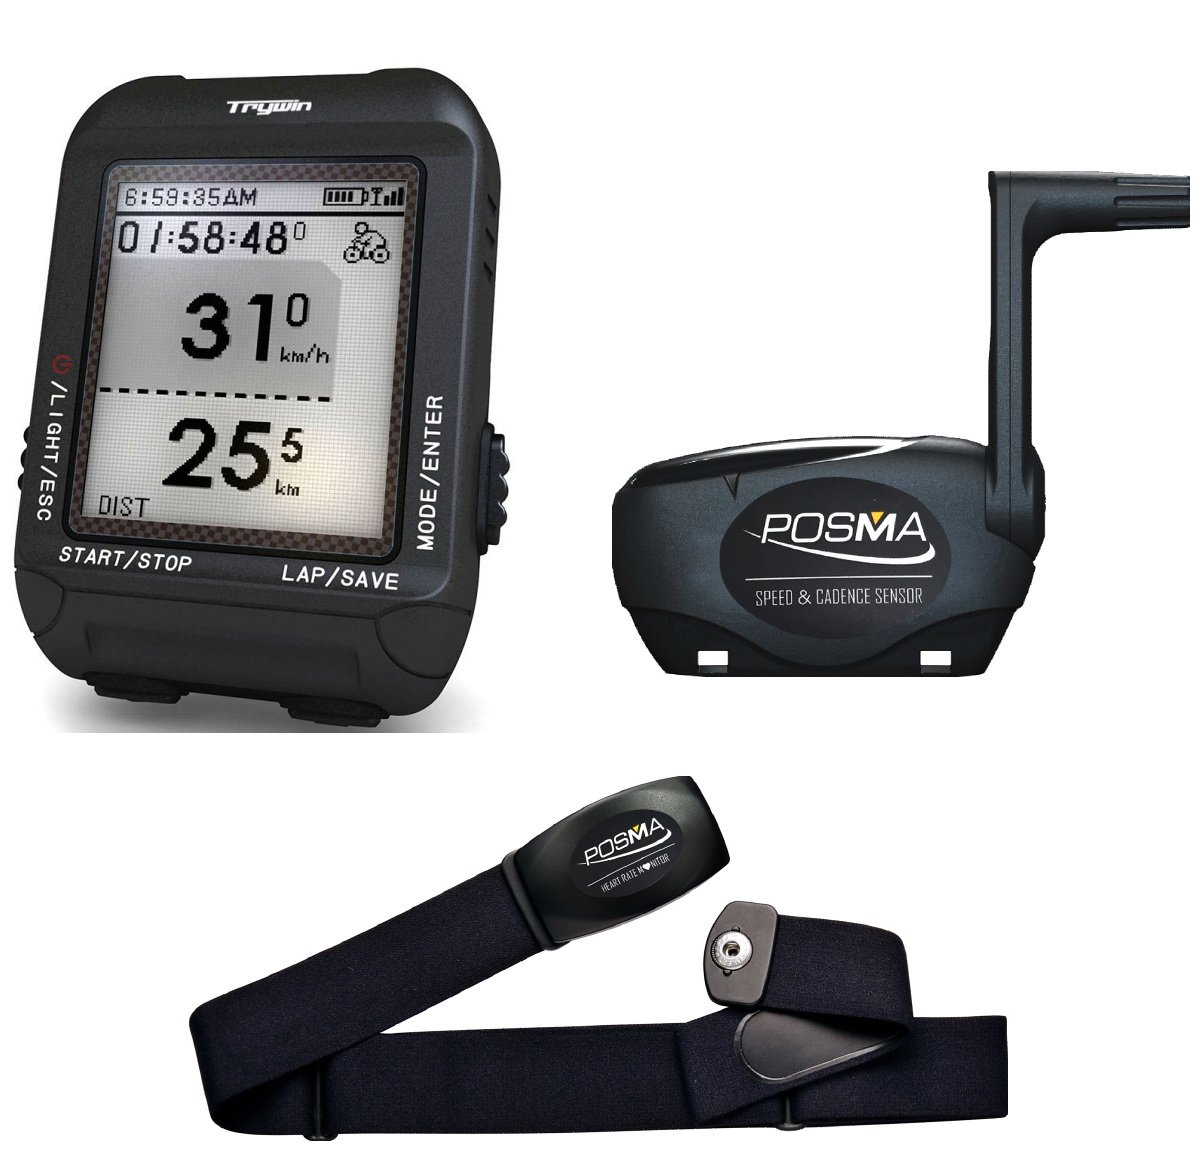 71K5KzT ioL - TRYWIN/POSMA D3 GPS Cycling Bike Computer Speedometer Odometer Navigation, ANT+ Support STRAVA MapMyRide (BHR20 Heart Rate Monitor BCB20 Speed/Cadence Sensor Bundle Option Available)